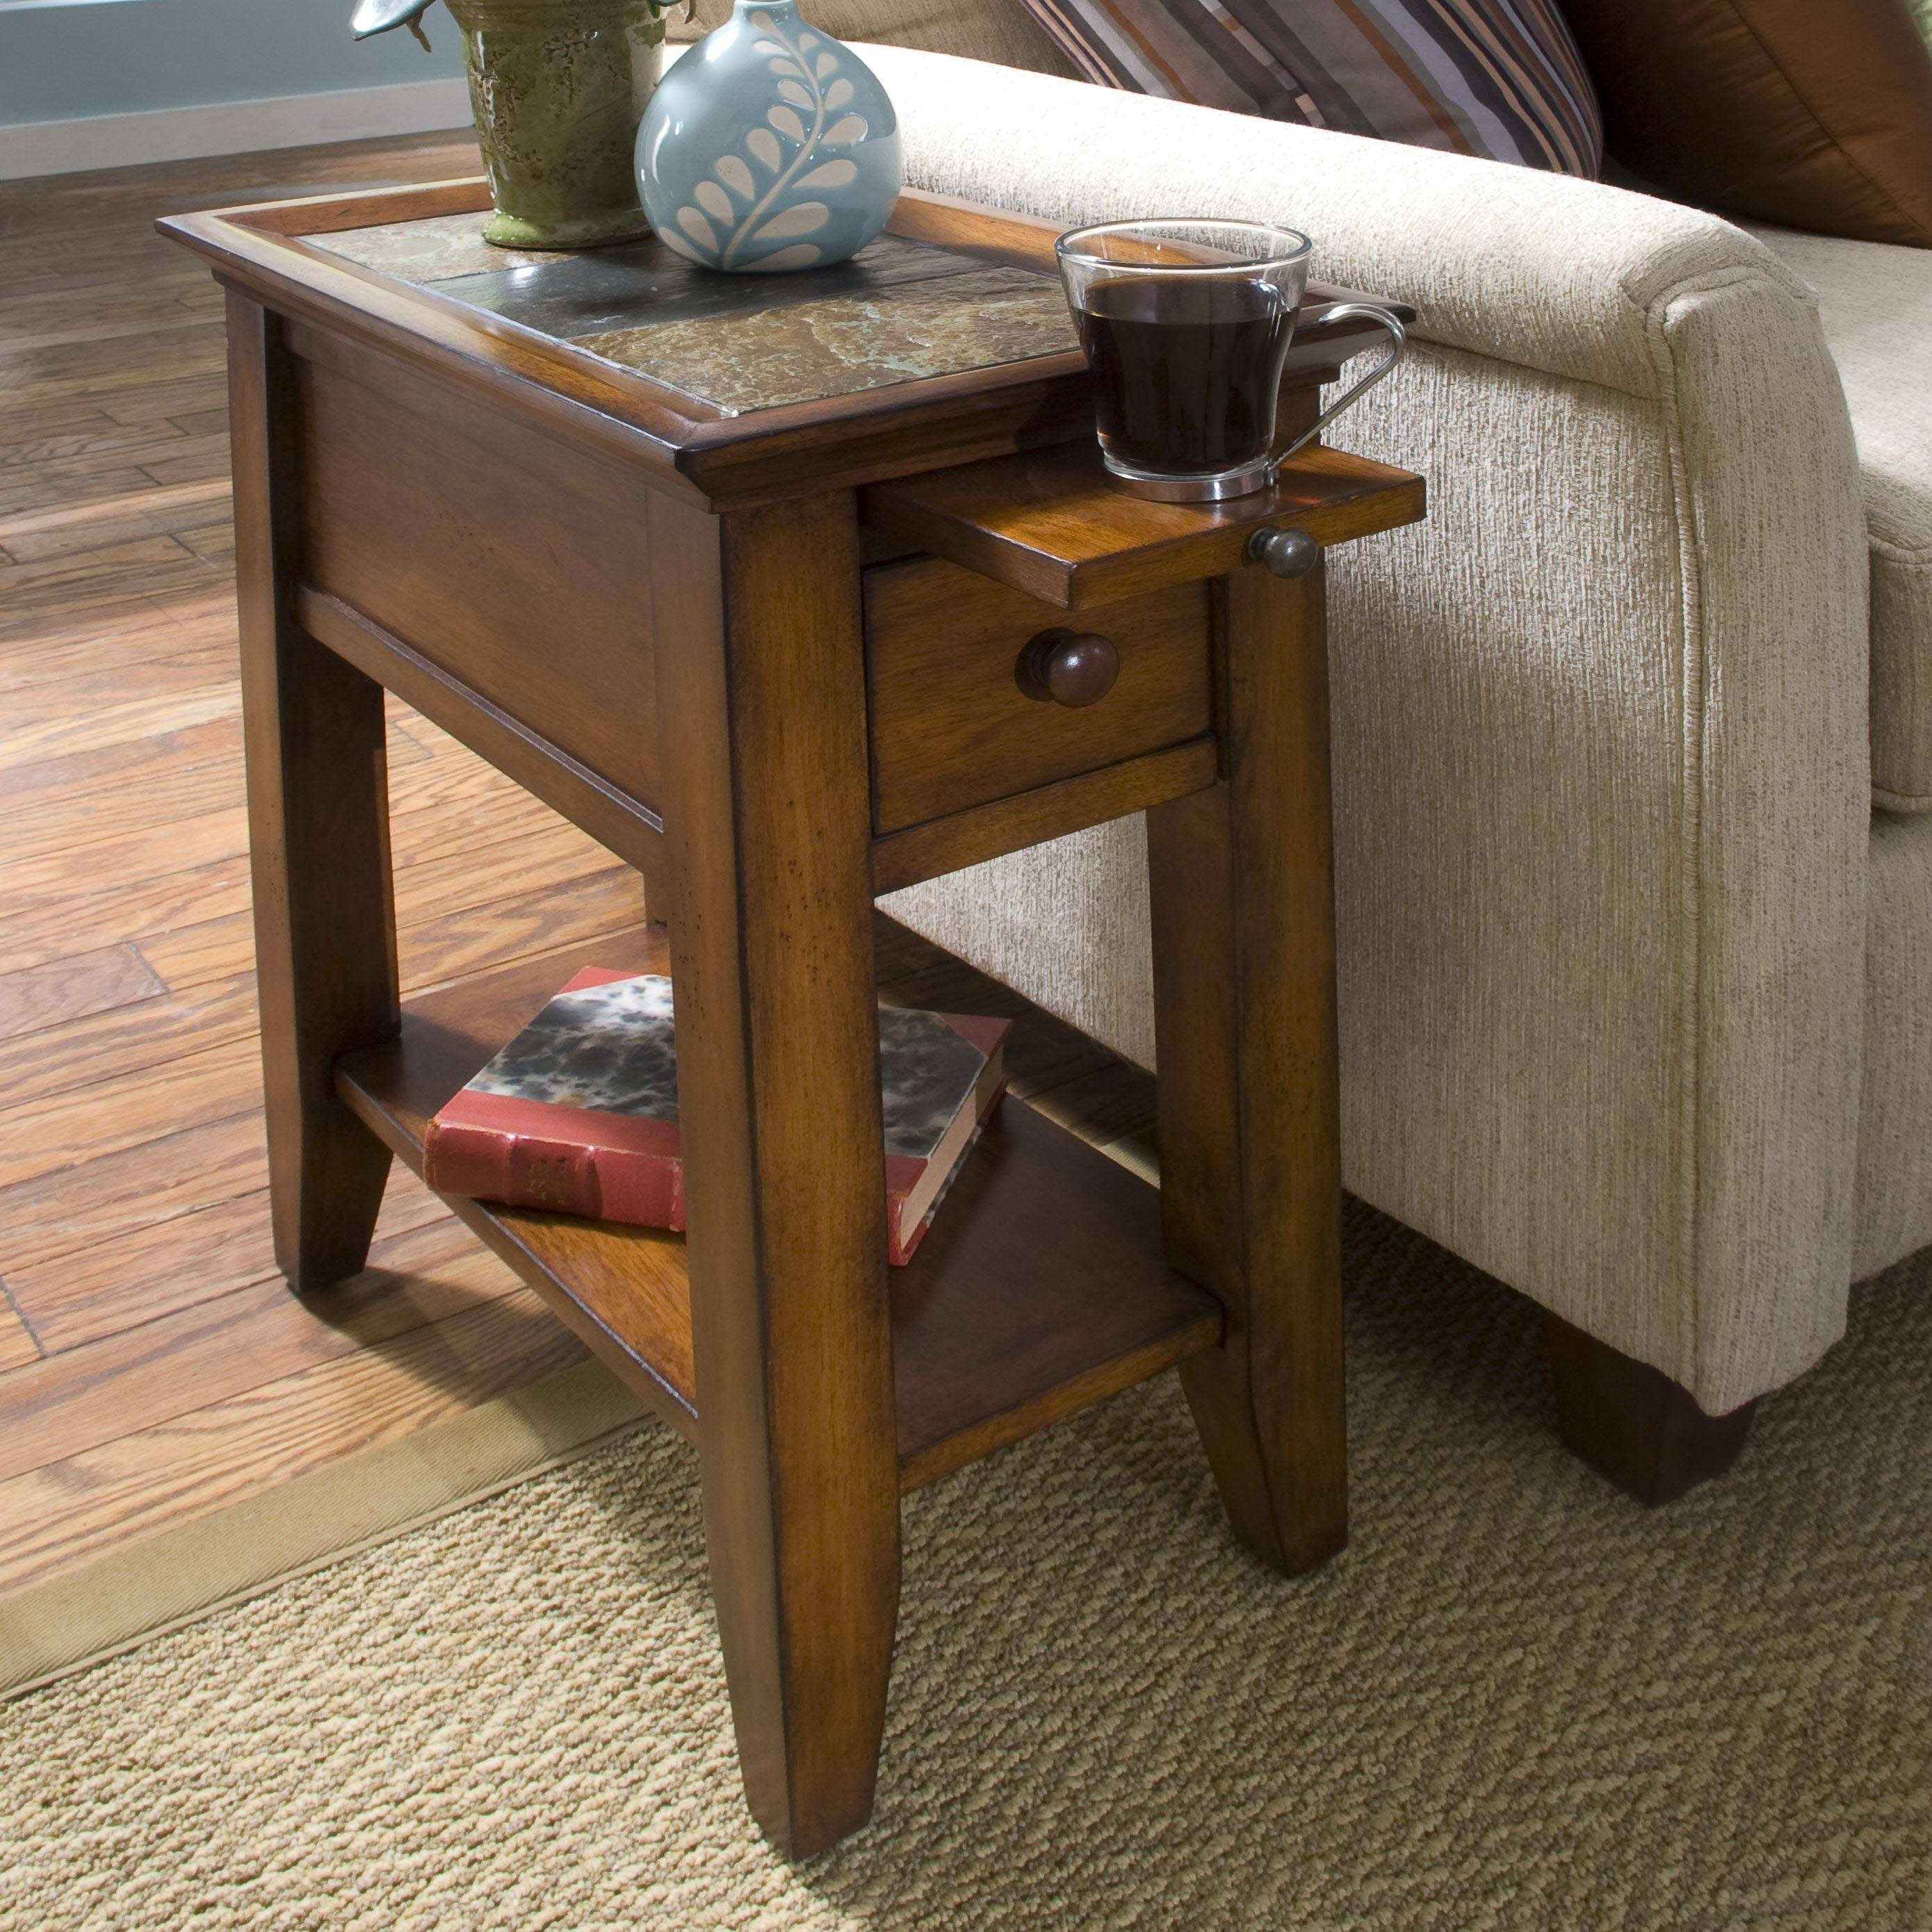 Narrow Coffee Table For A Cozy And Warm Rooms | Coffee Table for Narrow Coffee Tables (Image 24 of 30)